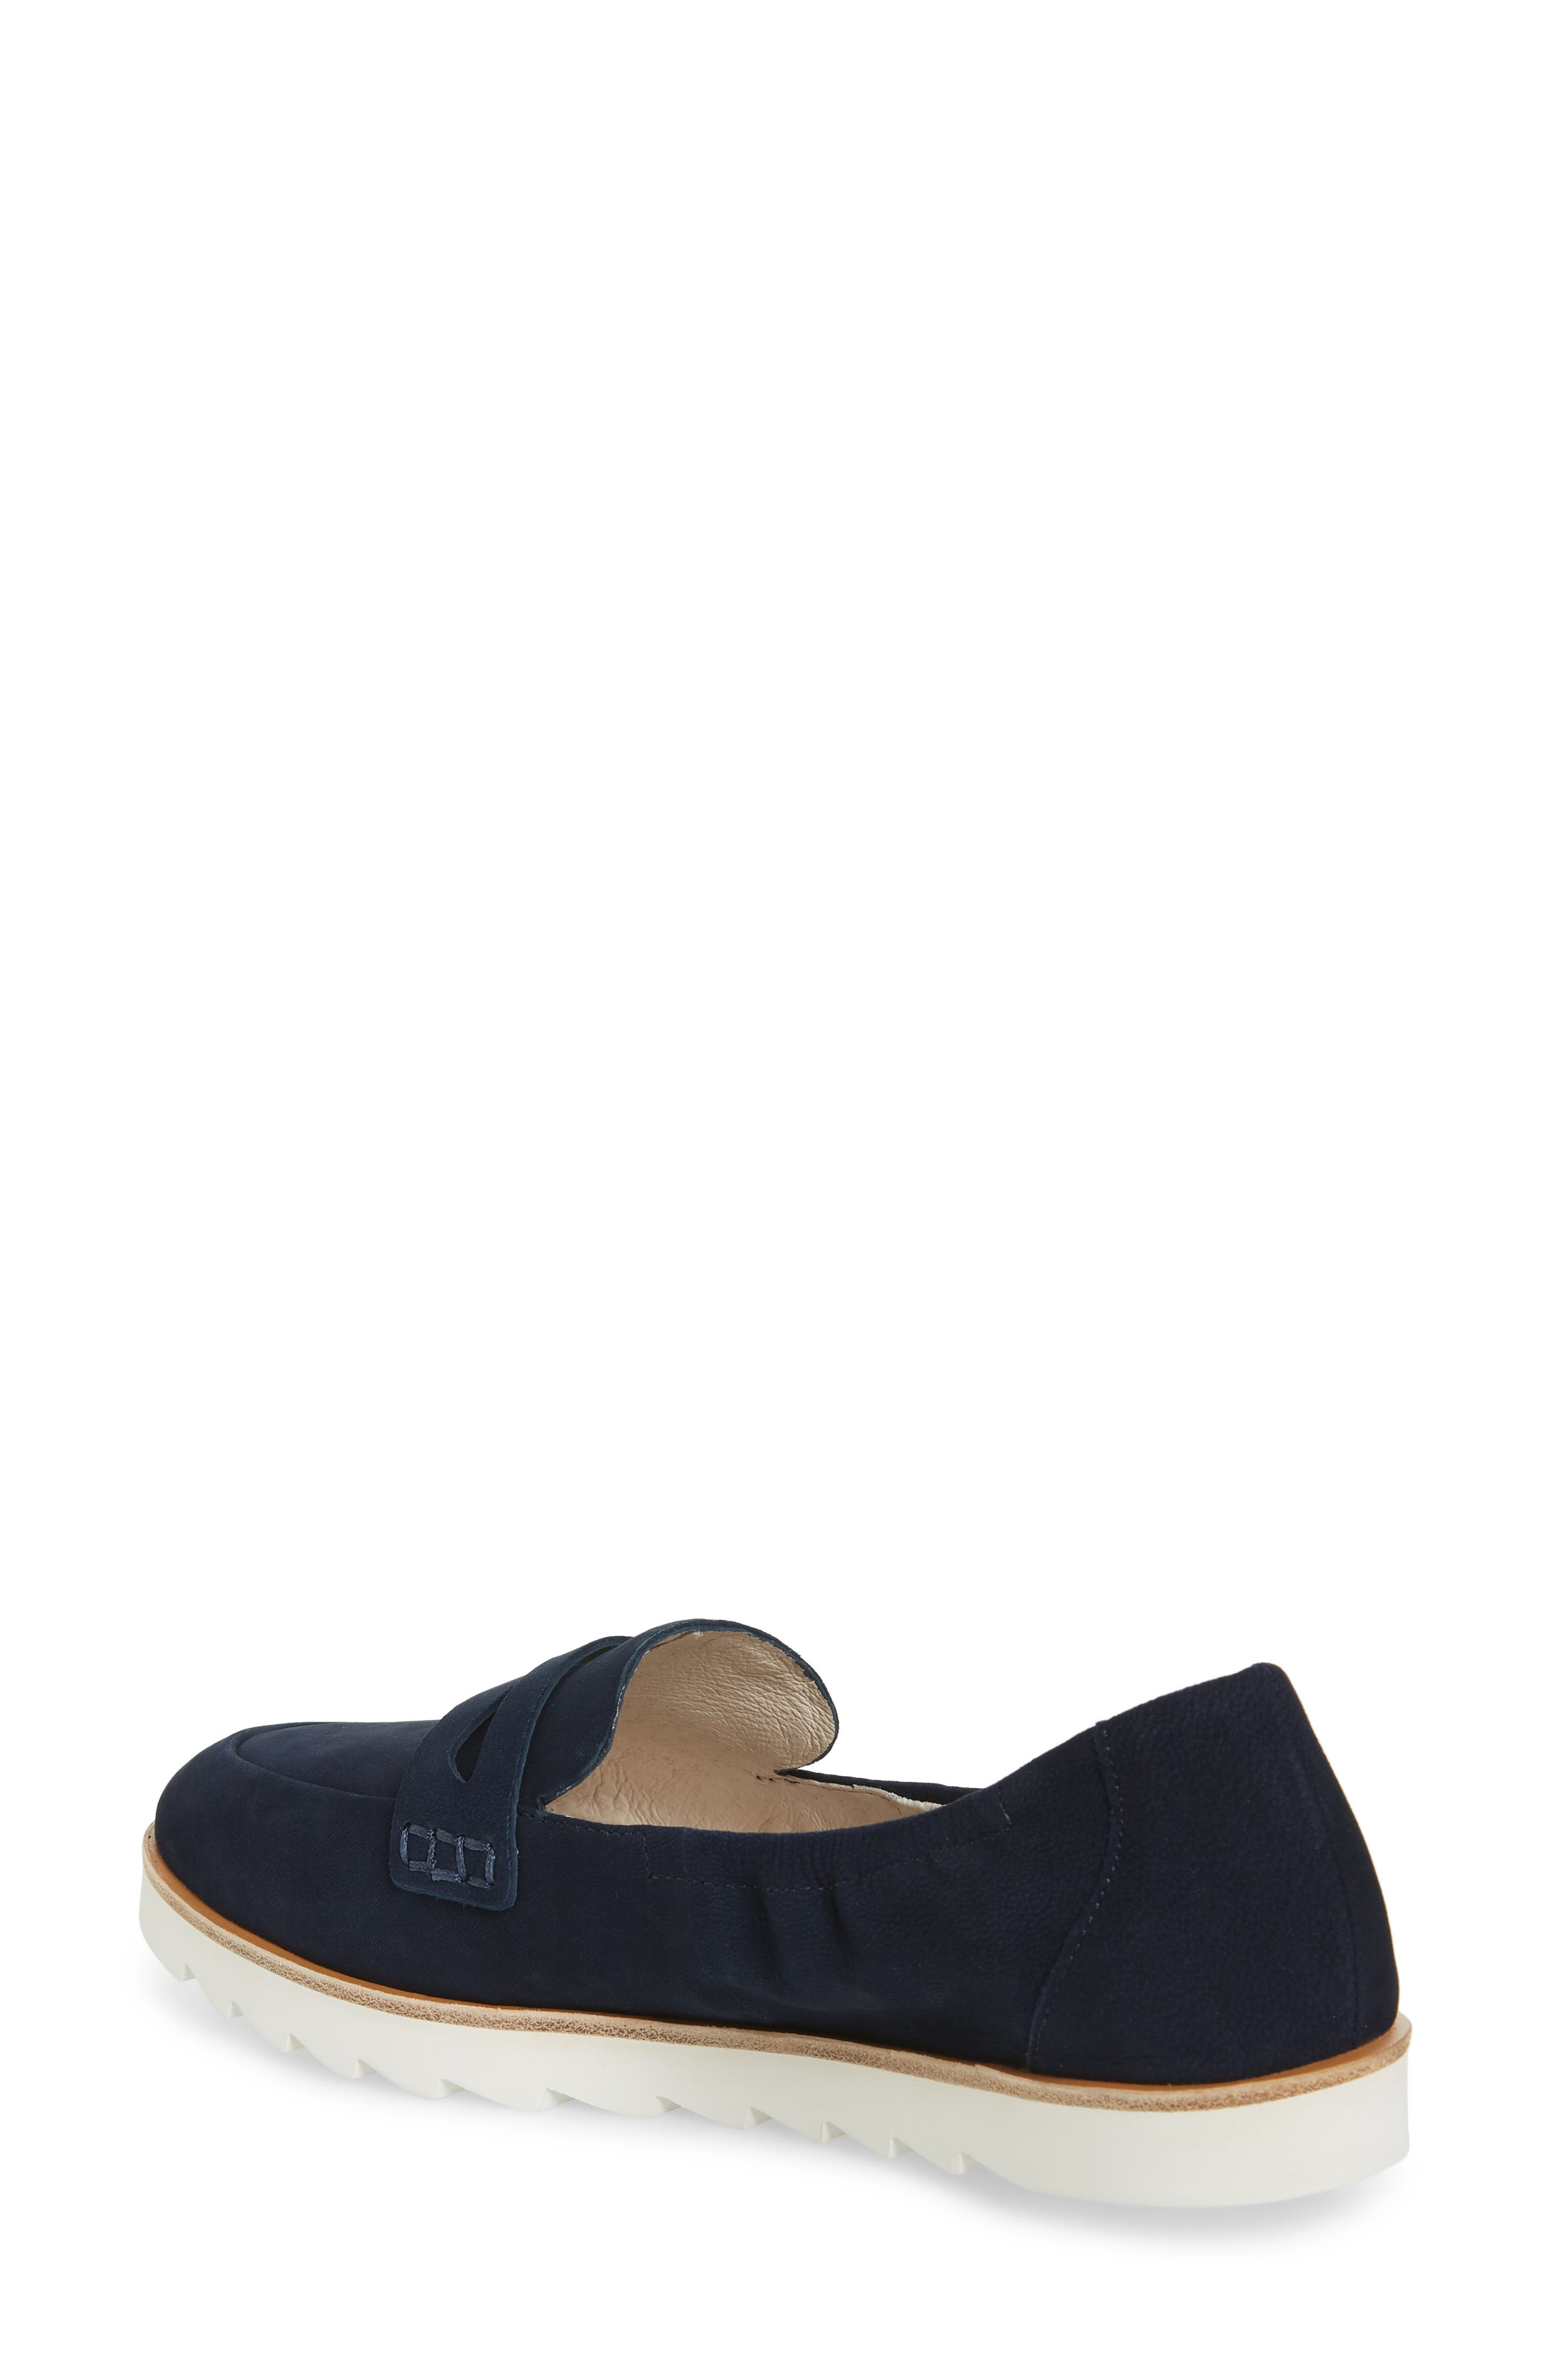 Rylee Penny Loafer,                             Alternate thumbnail 2, color,                             Navy Nubuck